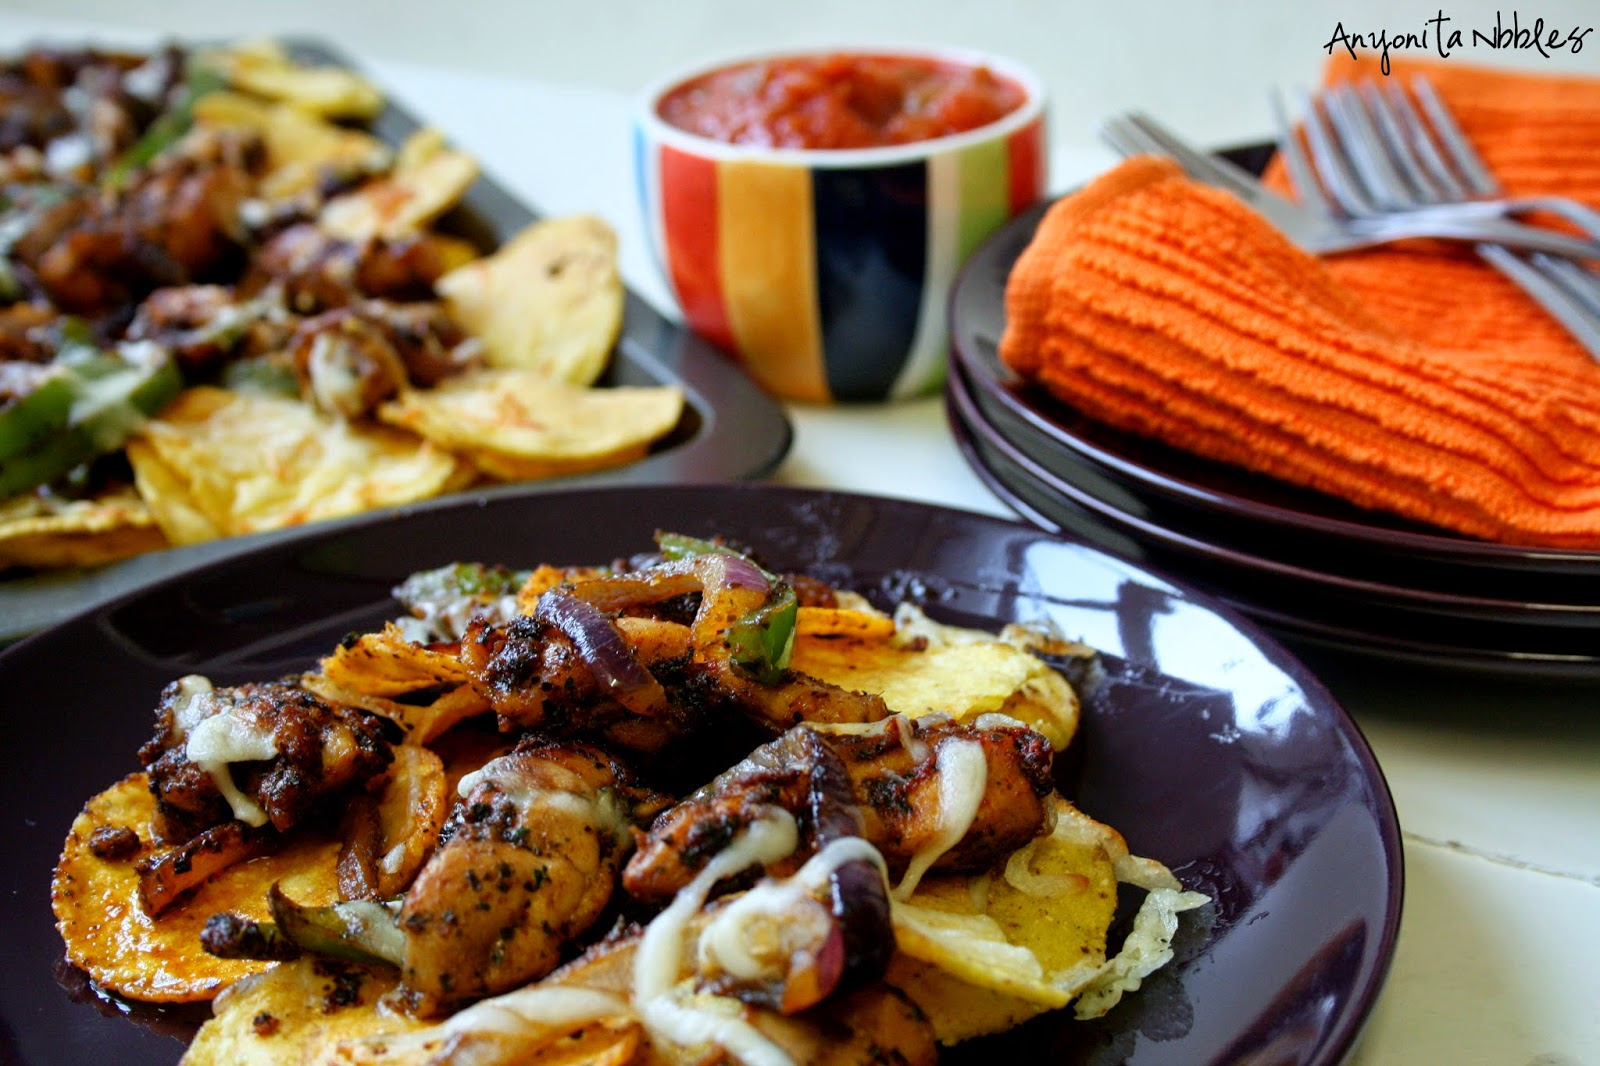 Juicy chicken combines with delicious baked nachos in this incredibly simple gluten free meal